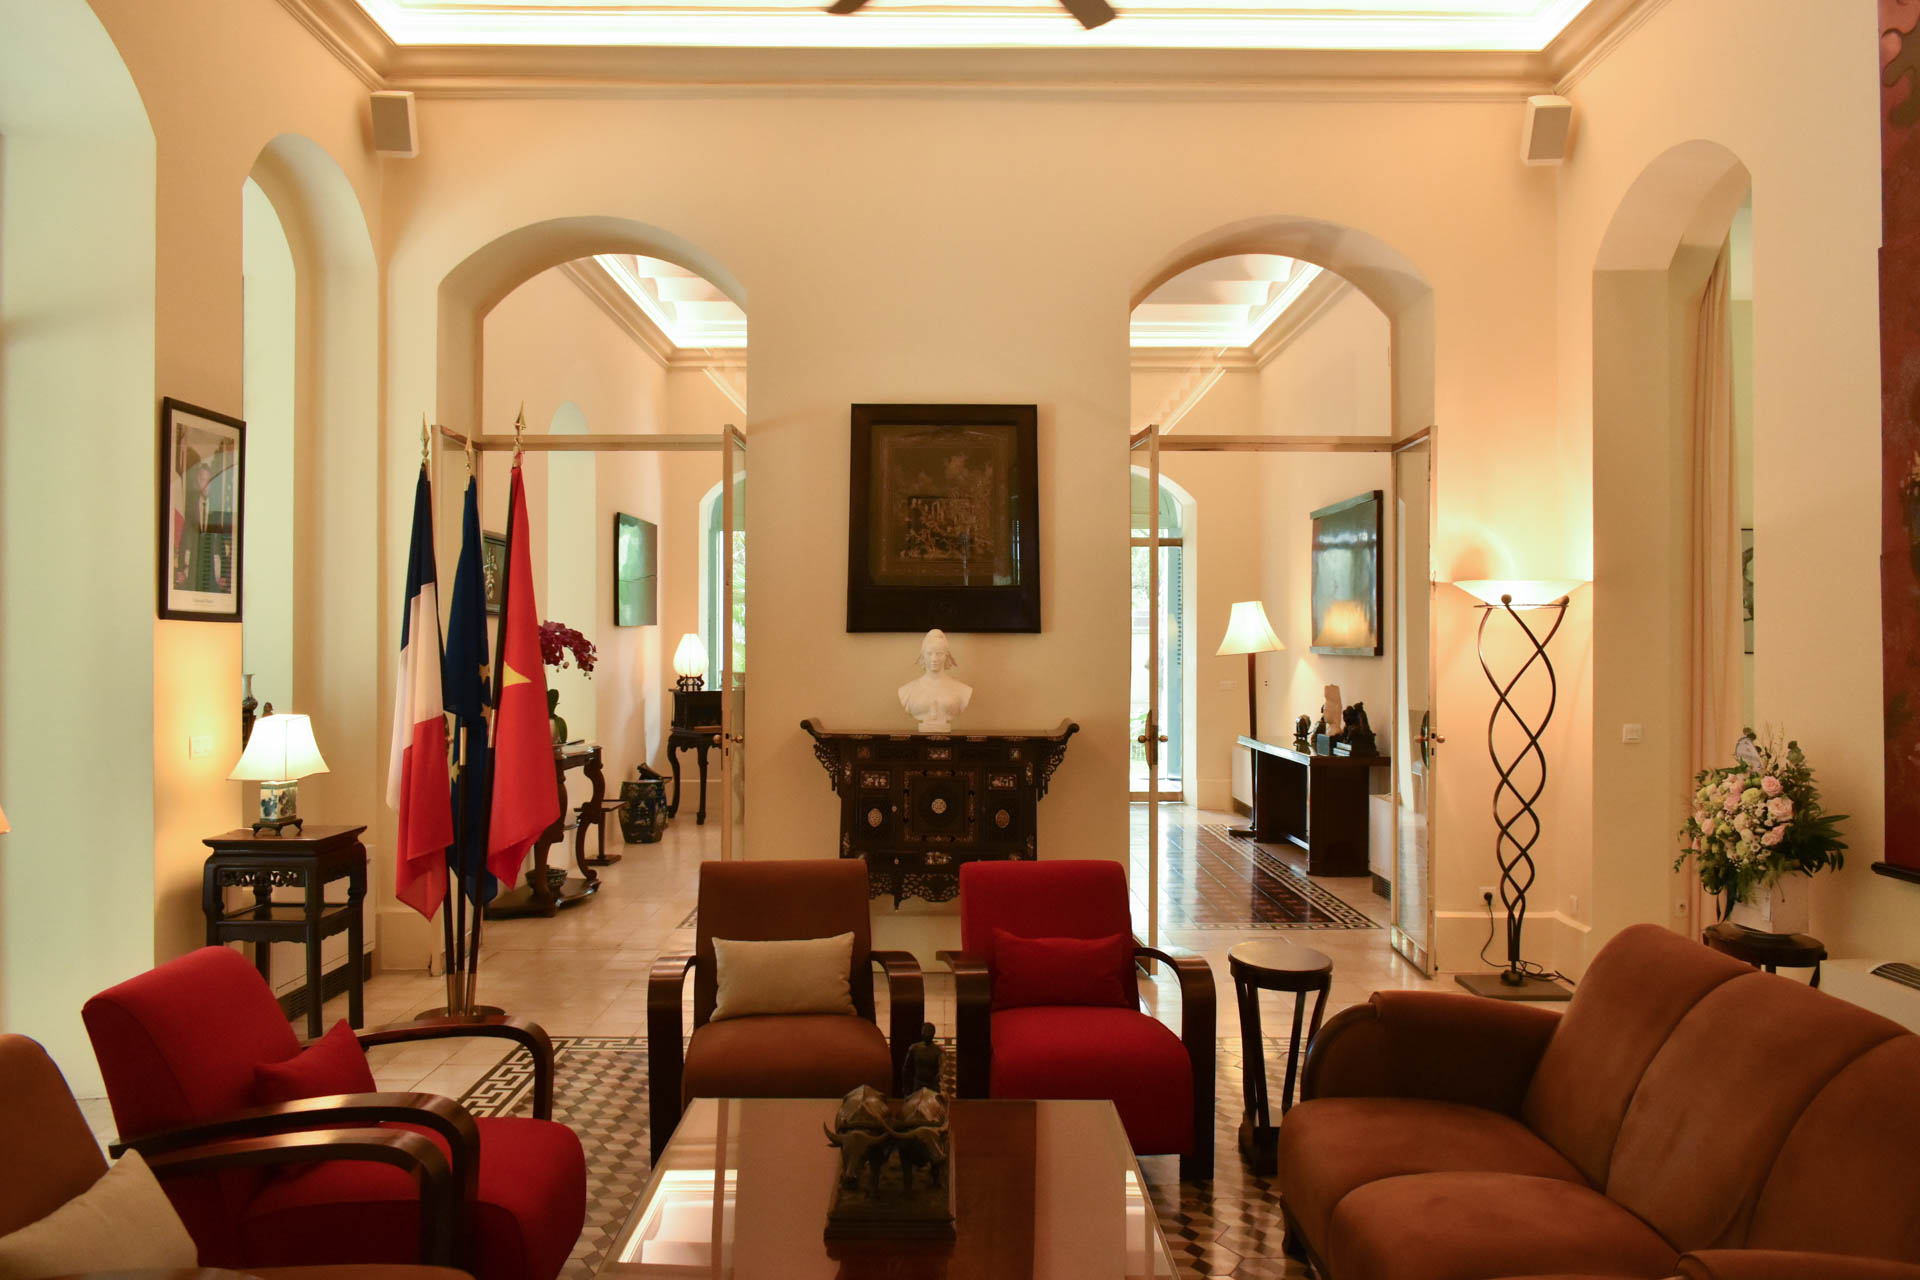 A reception room inside the Consulate General of France in Ho Chi Minh City. Photo: Tuan Son / Tuoi Tre News